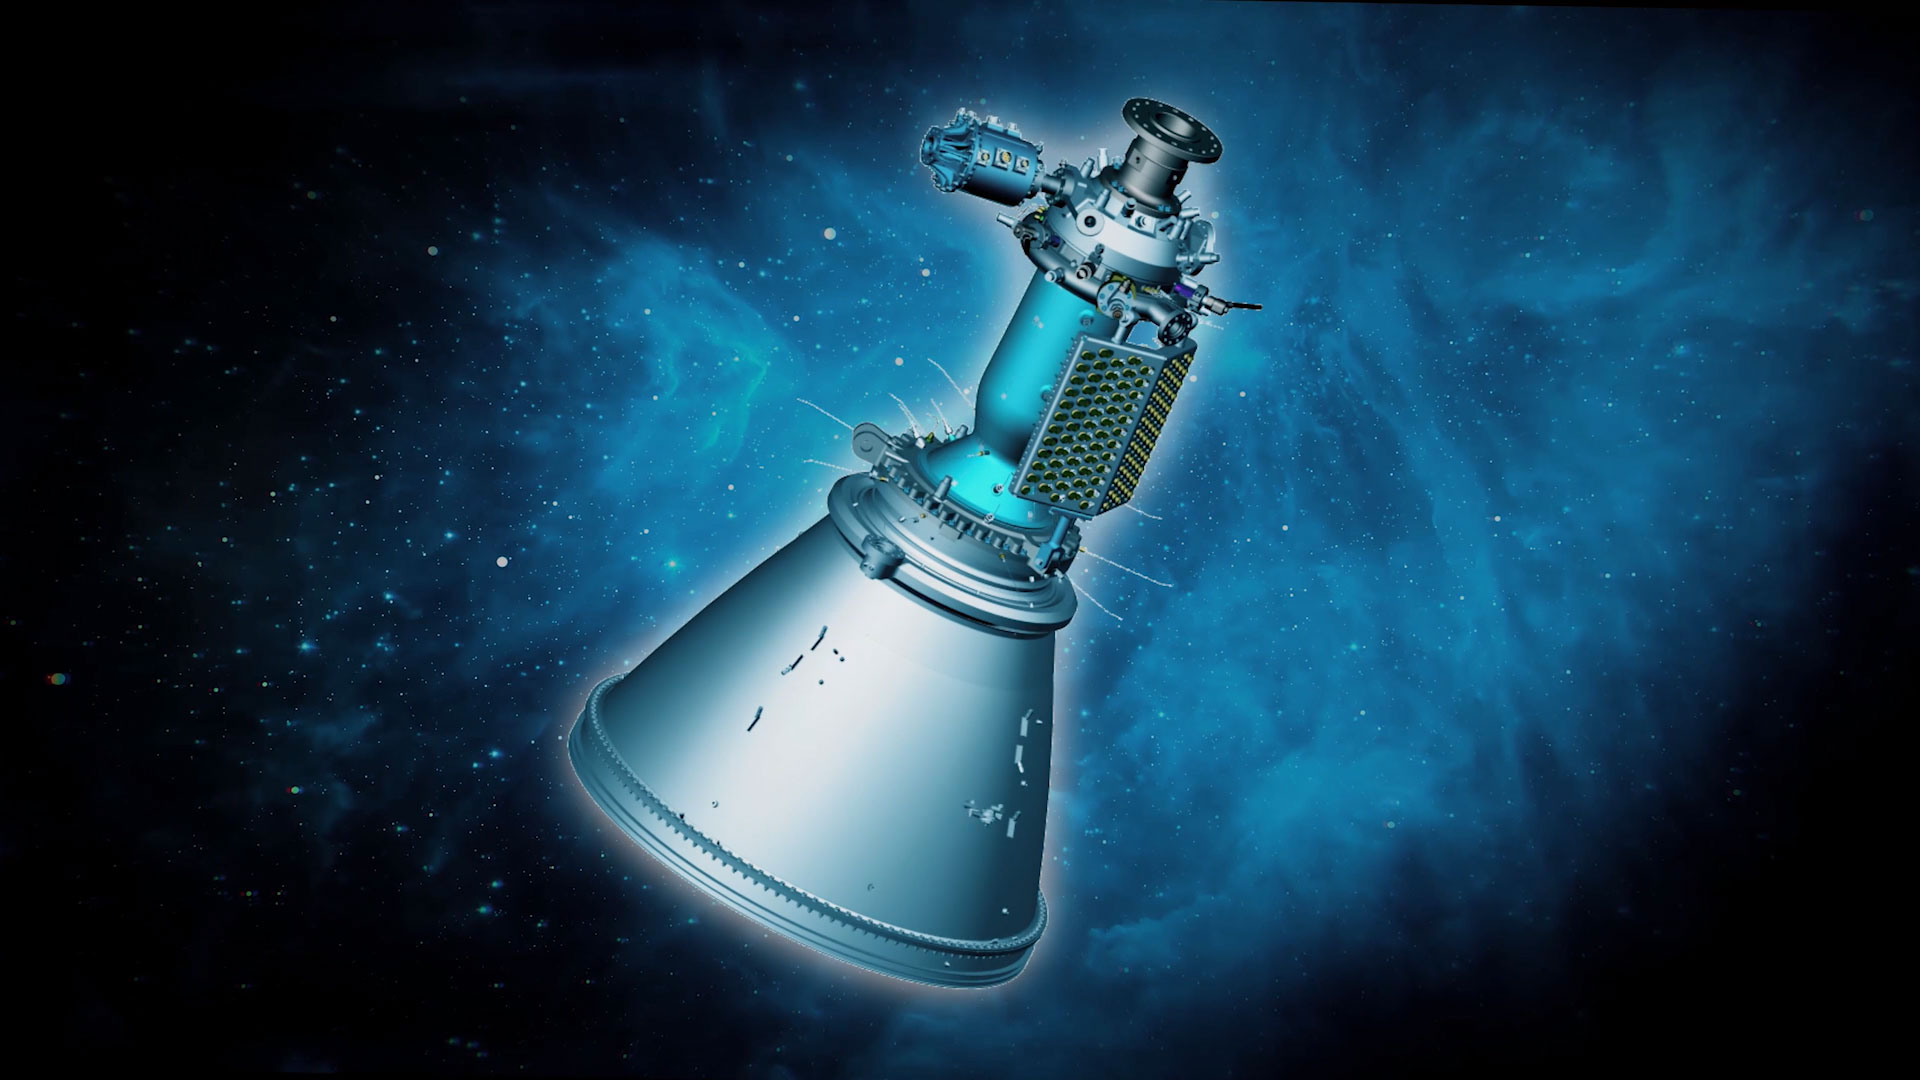 With ETID, ArianeGroup moves closer to the launcher upper stage engines of the future